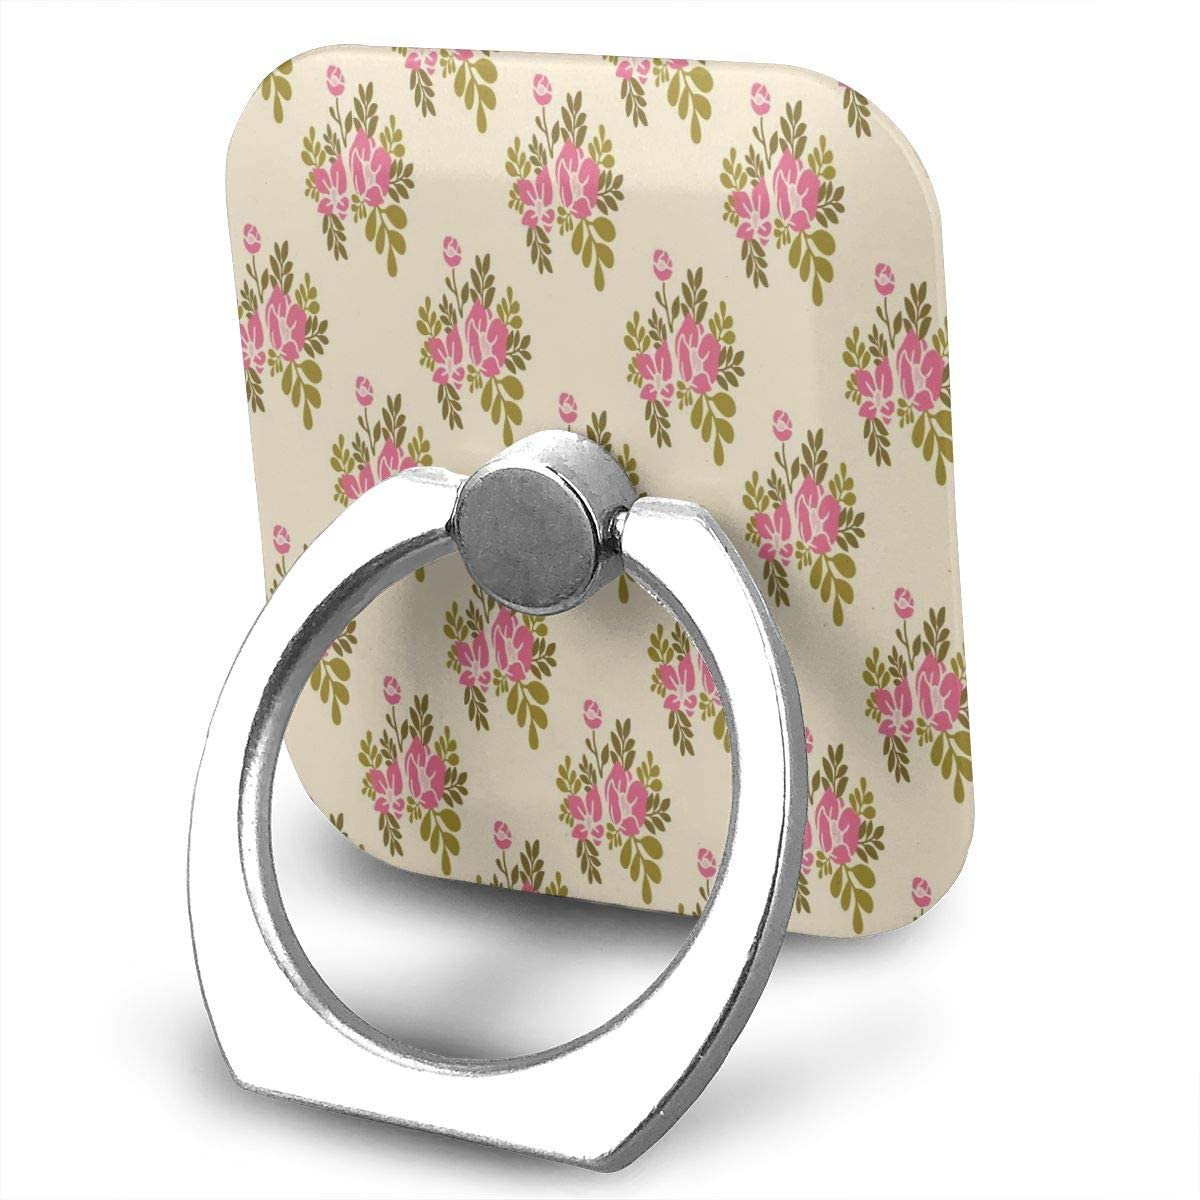 SLHFPX Universal Phone Ring Holder with Leaf Floral Elegant Decor. Adjustable 360°Rotation Square Finger Grip Loop Cell Phone Stand for Phone X/6/6s/7/8/8/10/11 Plus Smartphone Android